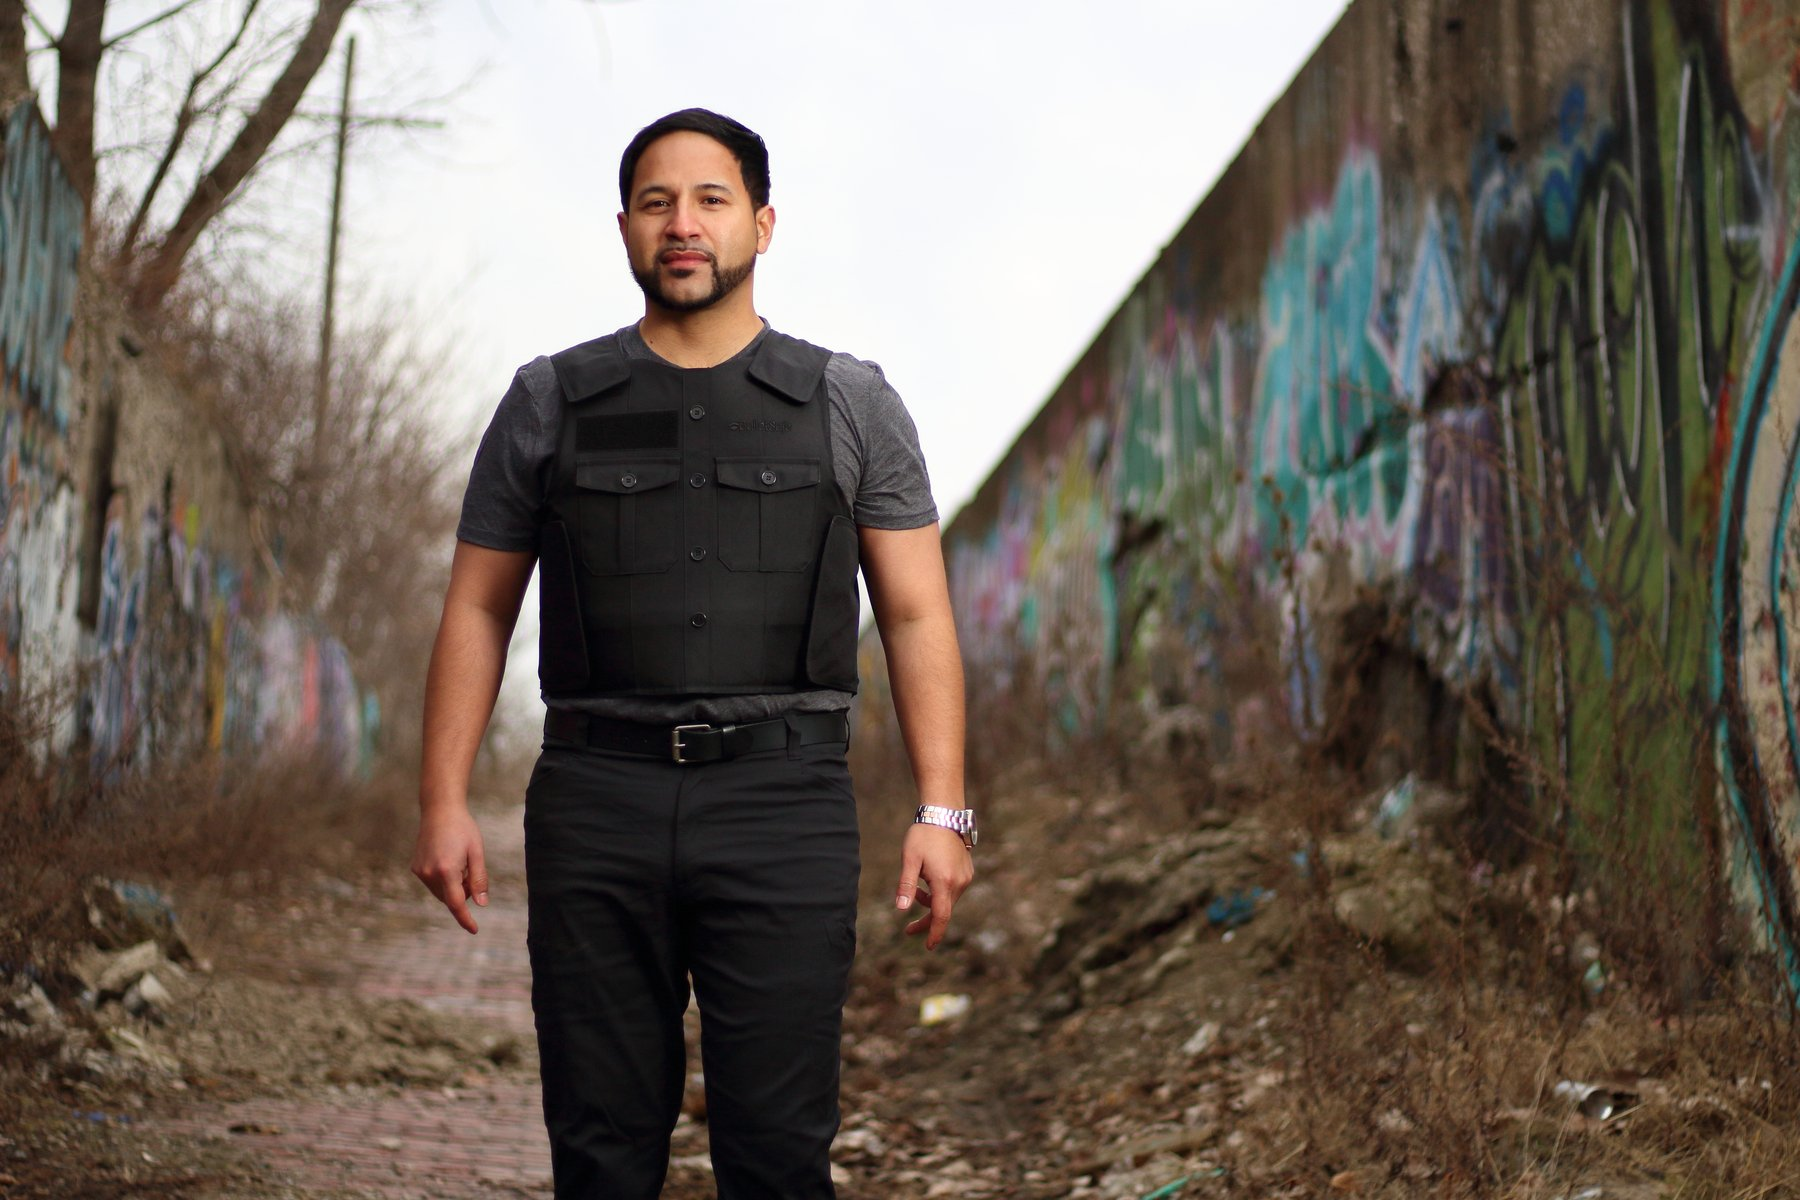 A man standing straight while wearing a bulletproof vest